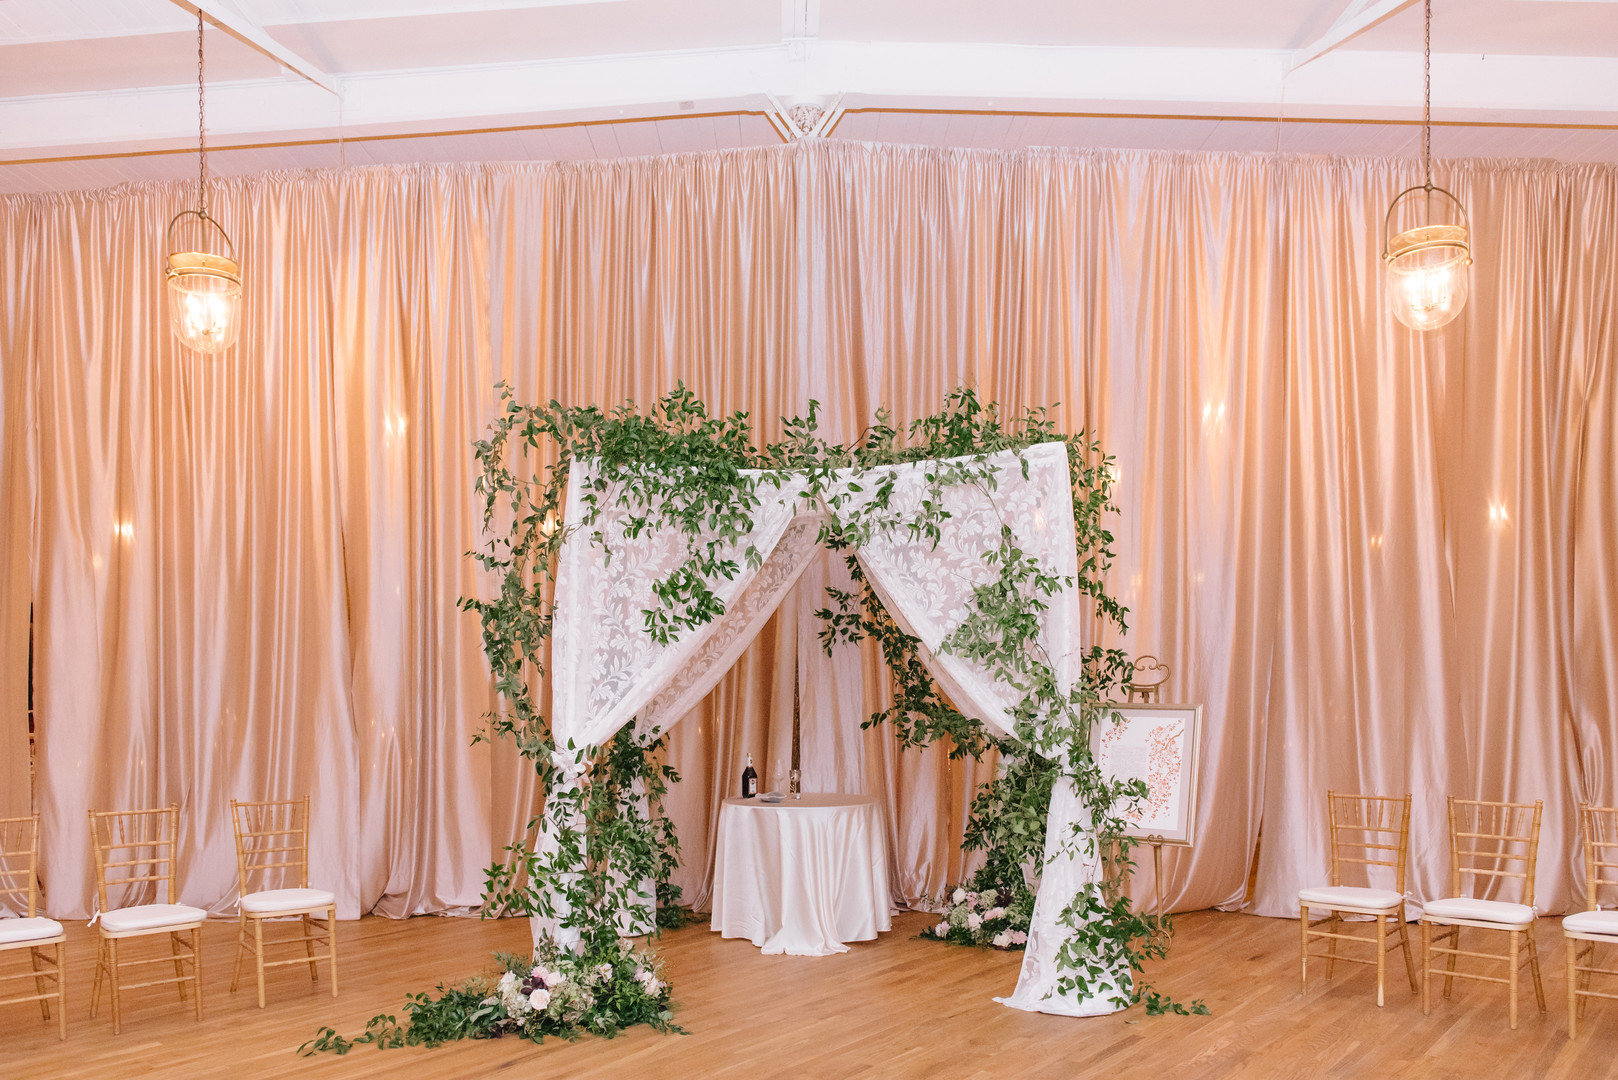 cedar-room-wedding-12.jpg